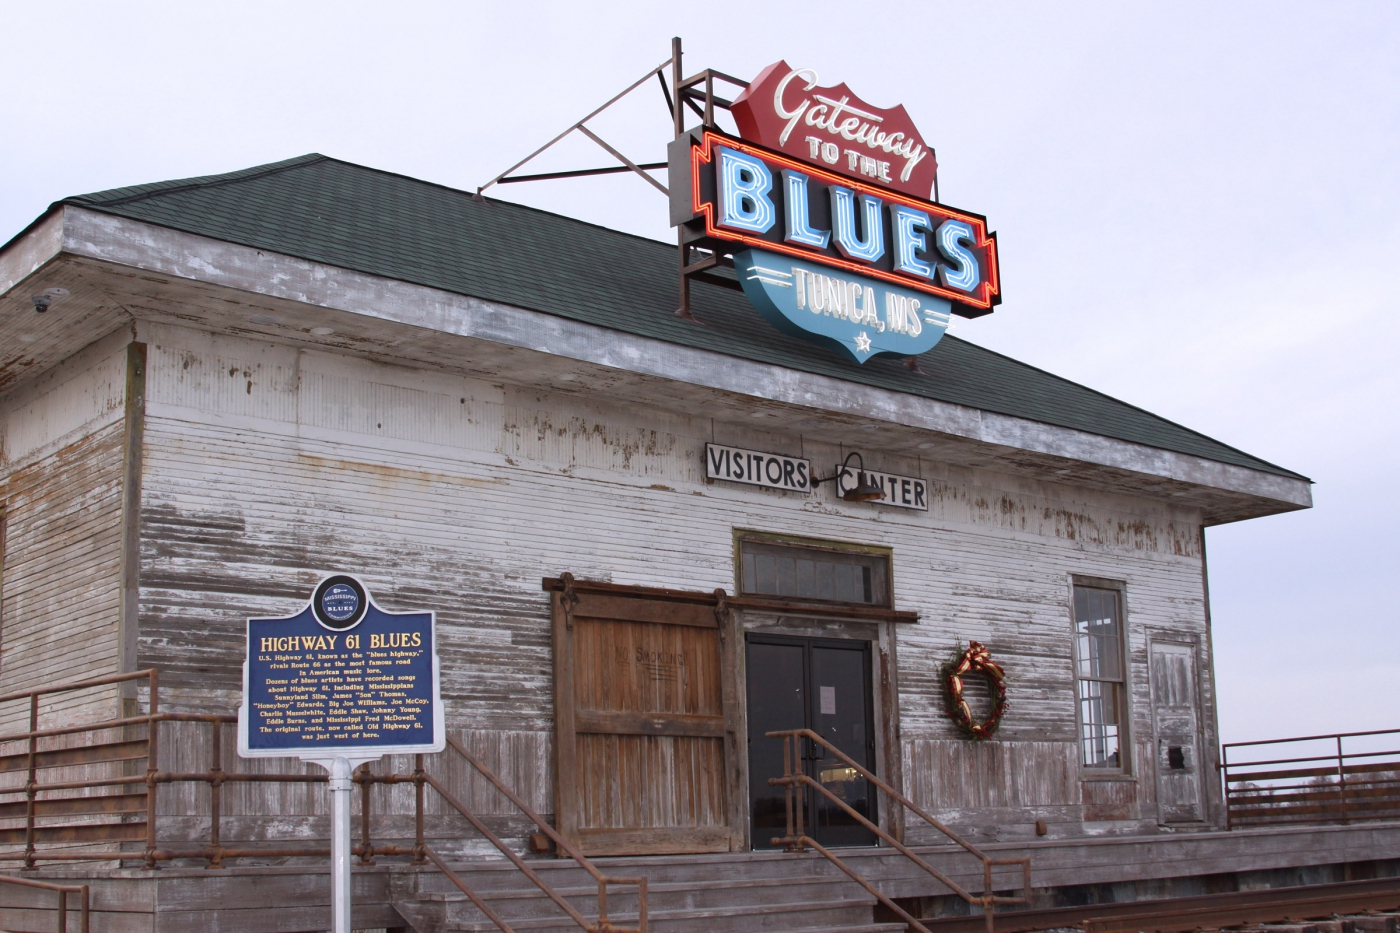 Tunica is the Gateway to the Blues, and the Visitors Center exudes that Blues spirit. A great stop in the Heart of the Delta.